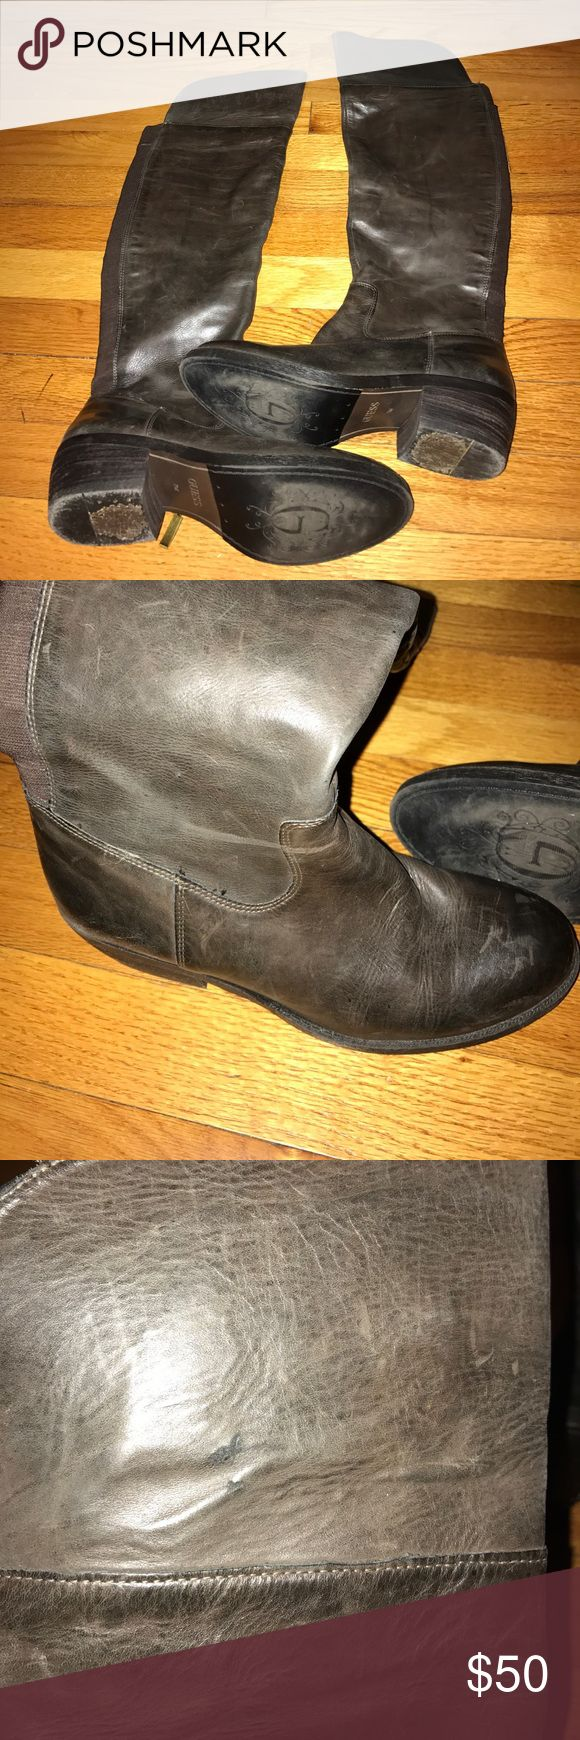 Guess brown leather over the knee boots Great condition. Minor scuffs and wear in stretch panel. 14 inch circumference with stretch panel. 1 1/2 heel. 21 inch shaft. Guess Shoes Over the Knee Boots